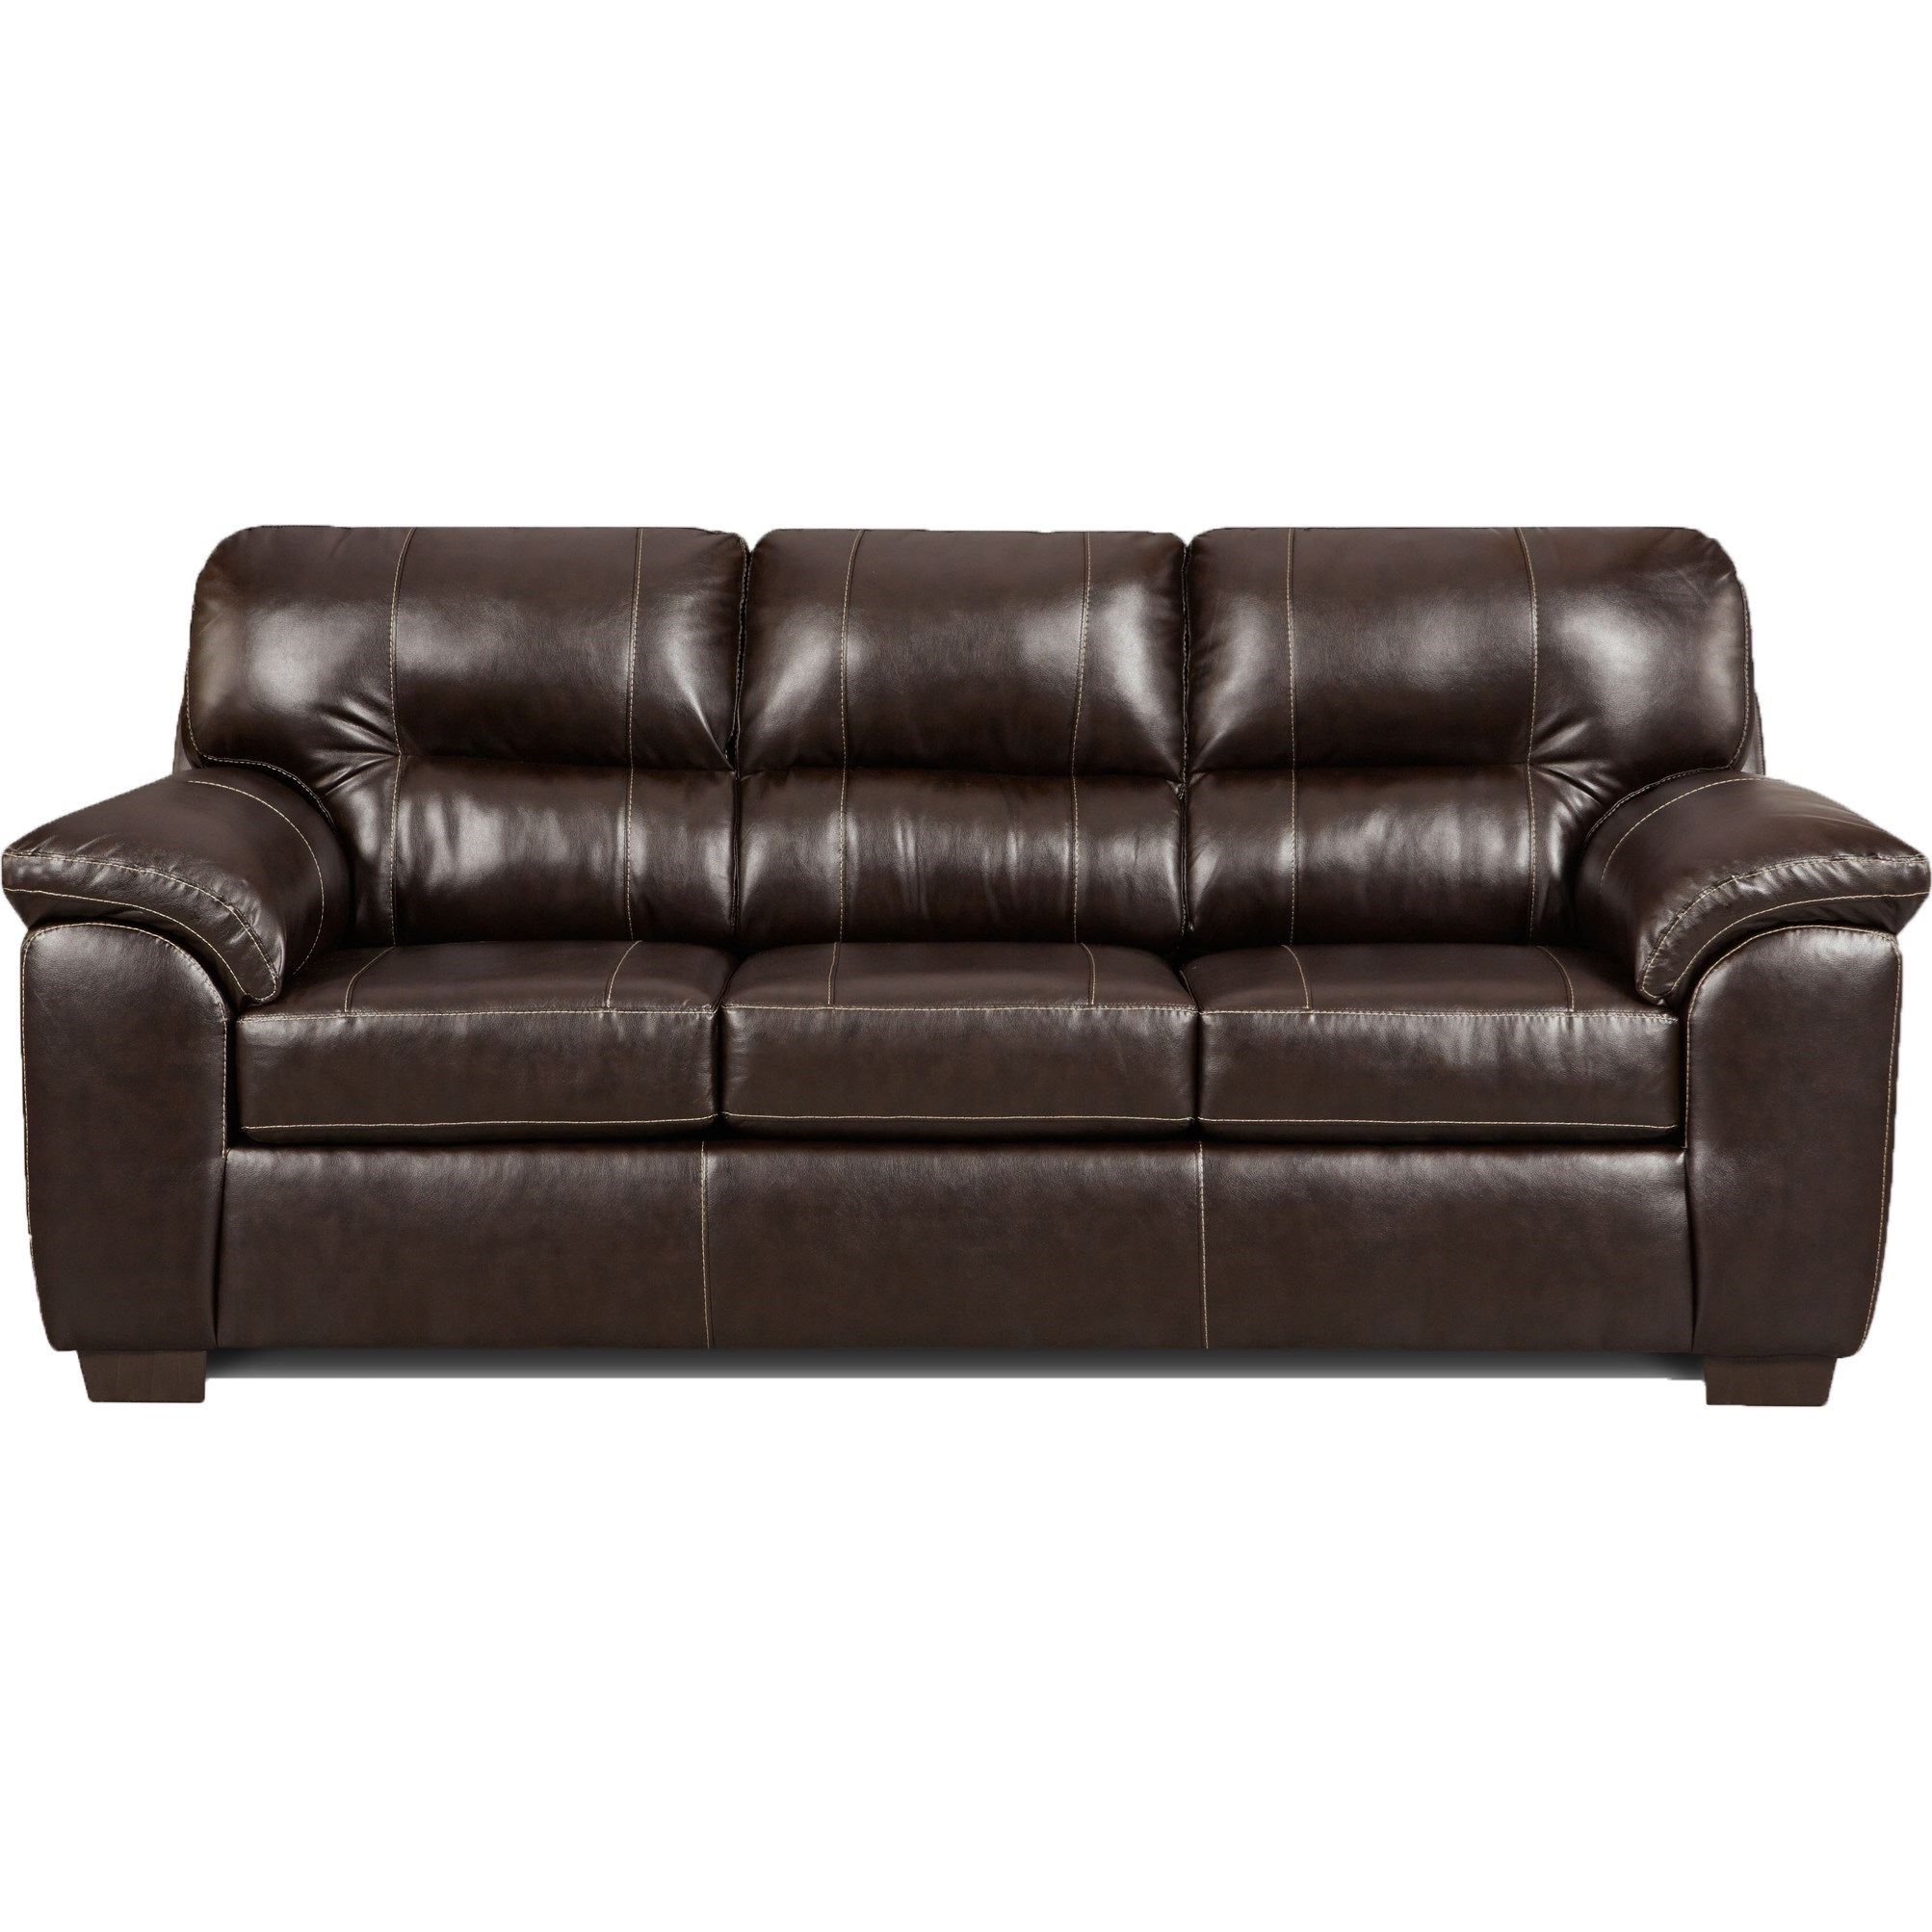 Sofa 5600 by affordable furniture wilcox furniture for Affordable furniture number